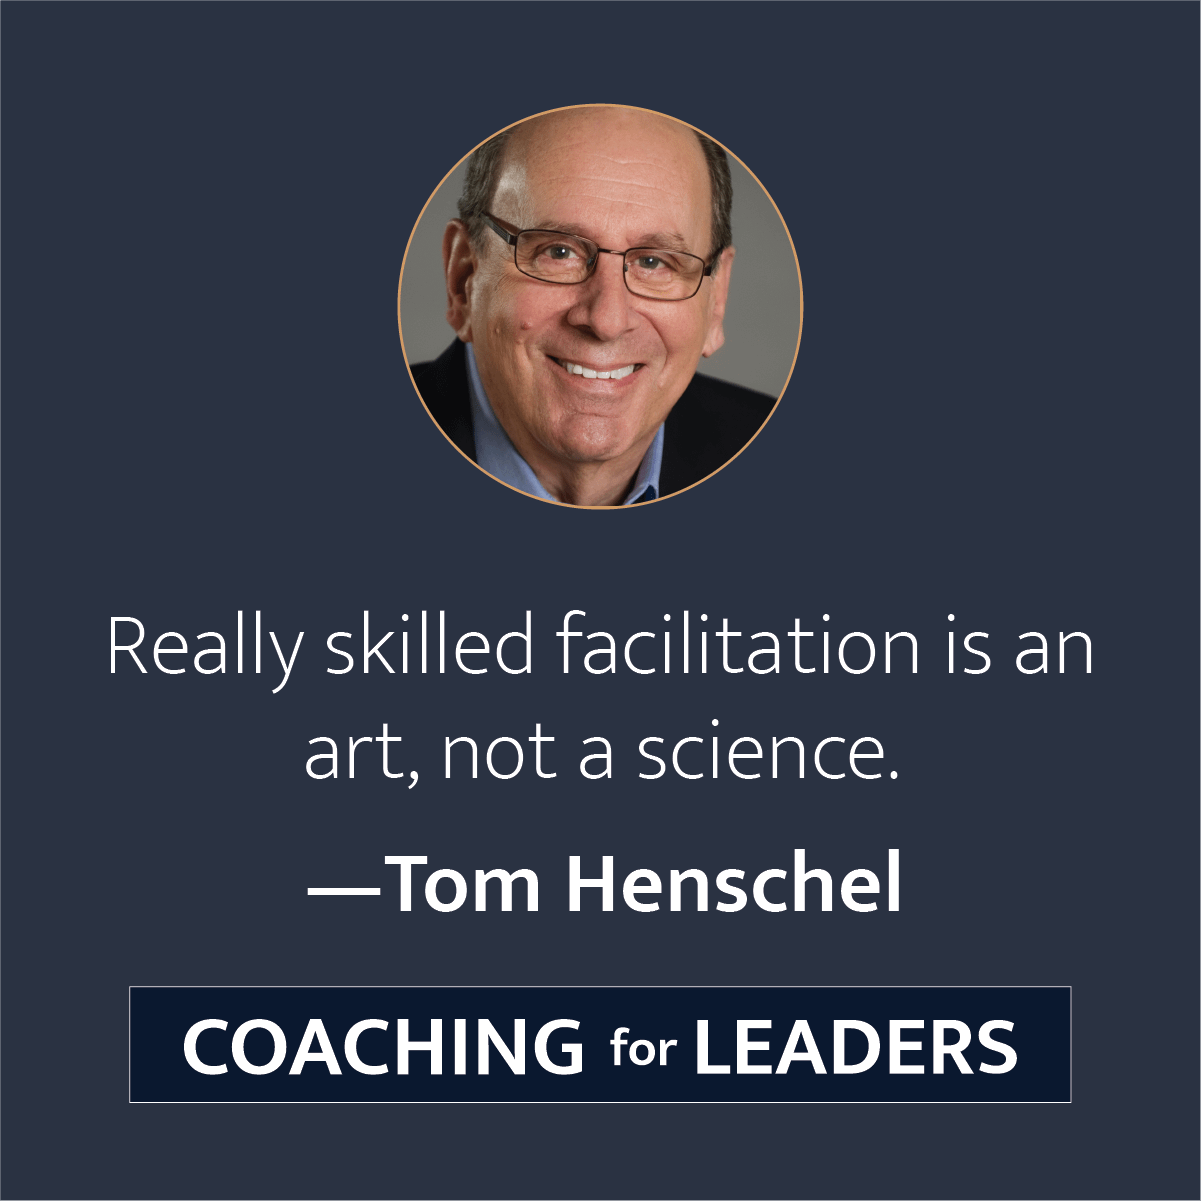 Really skilled facilitation is an art, not a science.